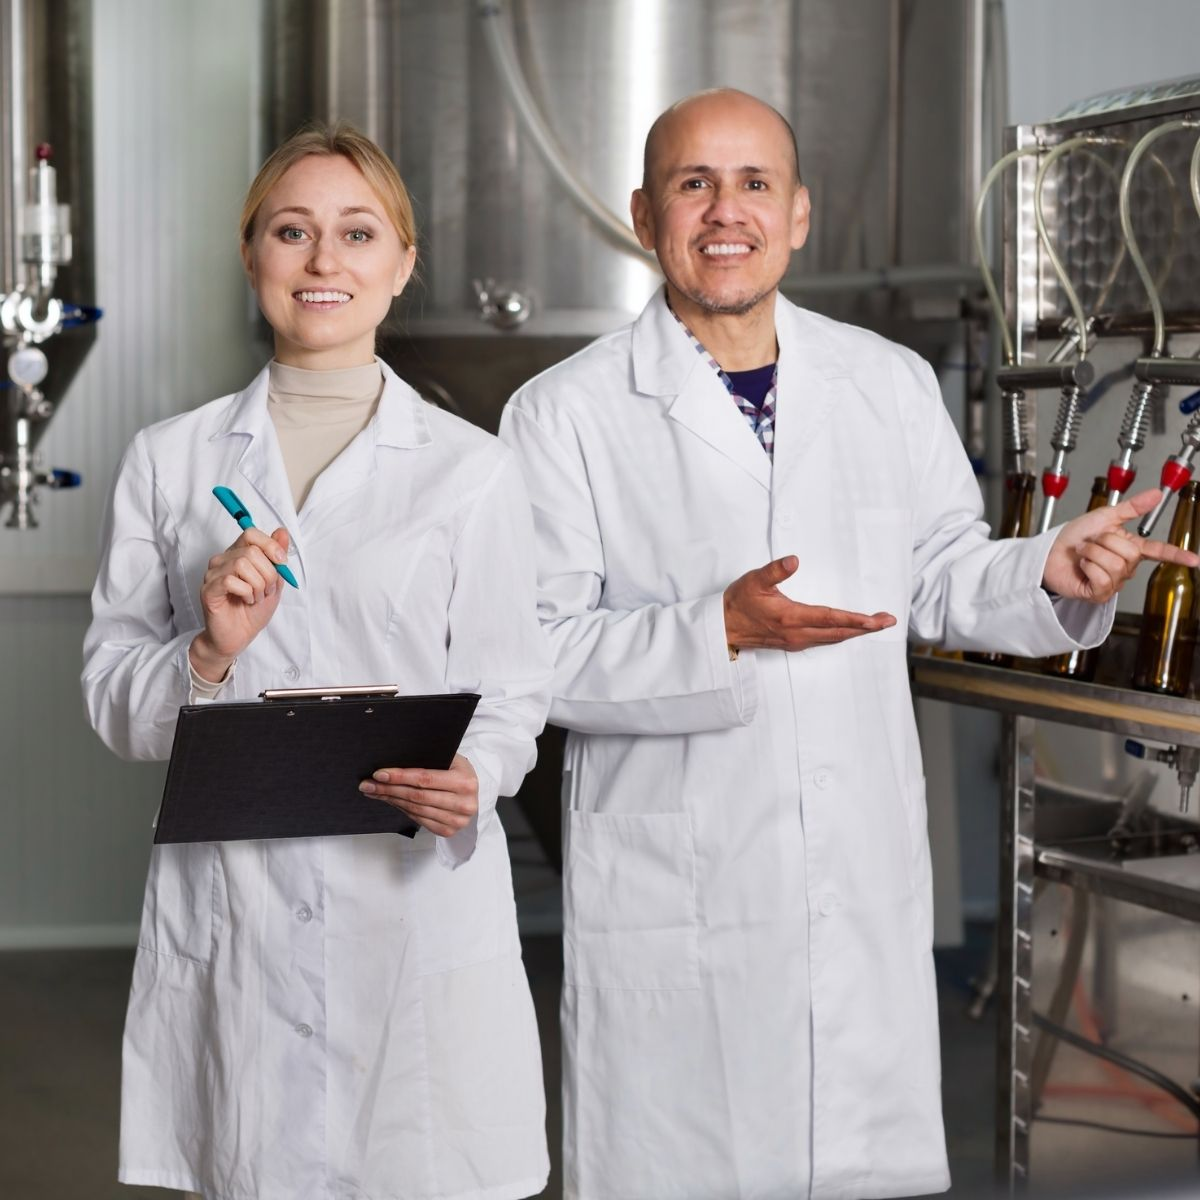 Two internal auditors standing in a food process area with clipboards, training in internal auditing.